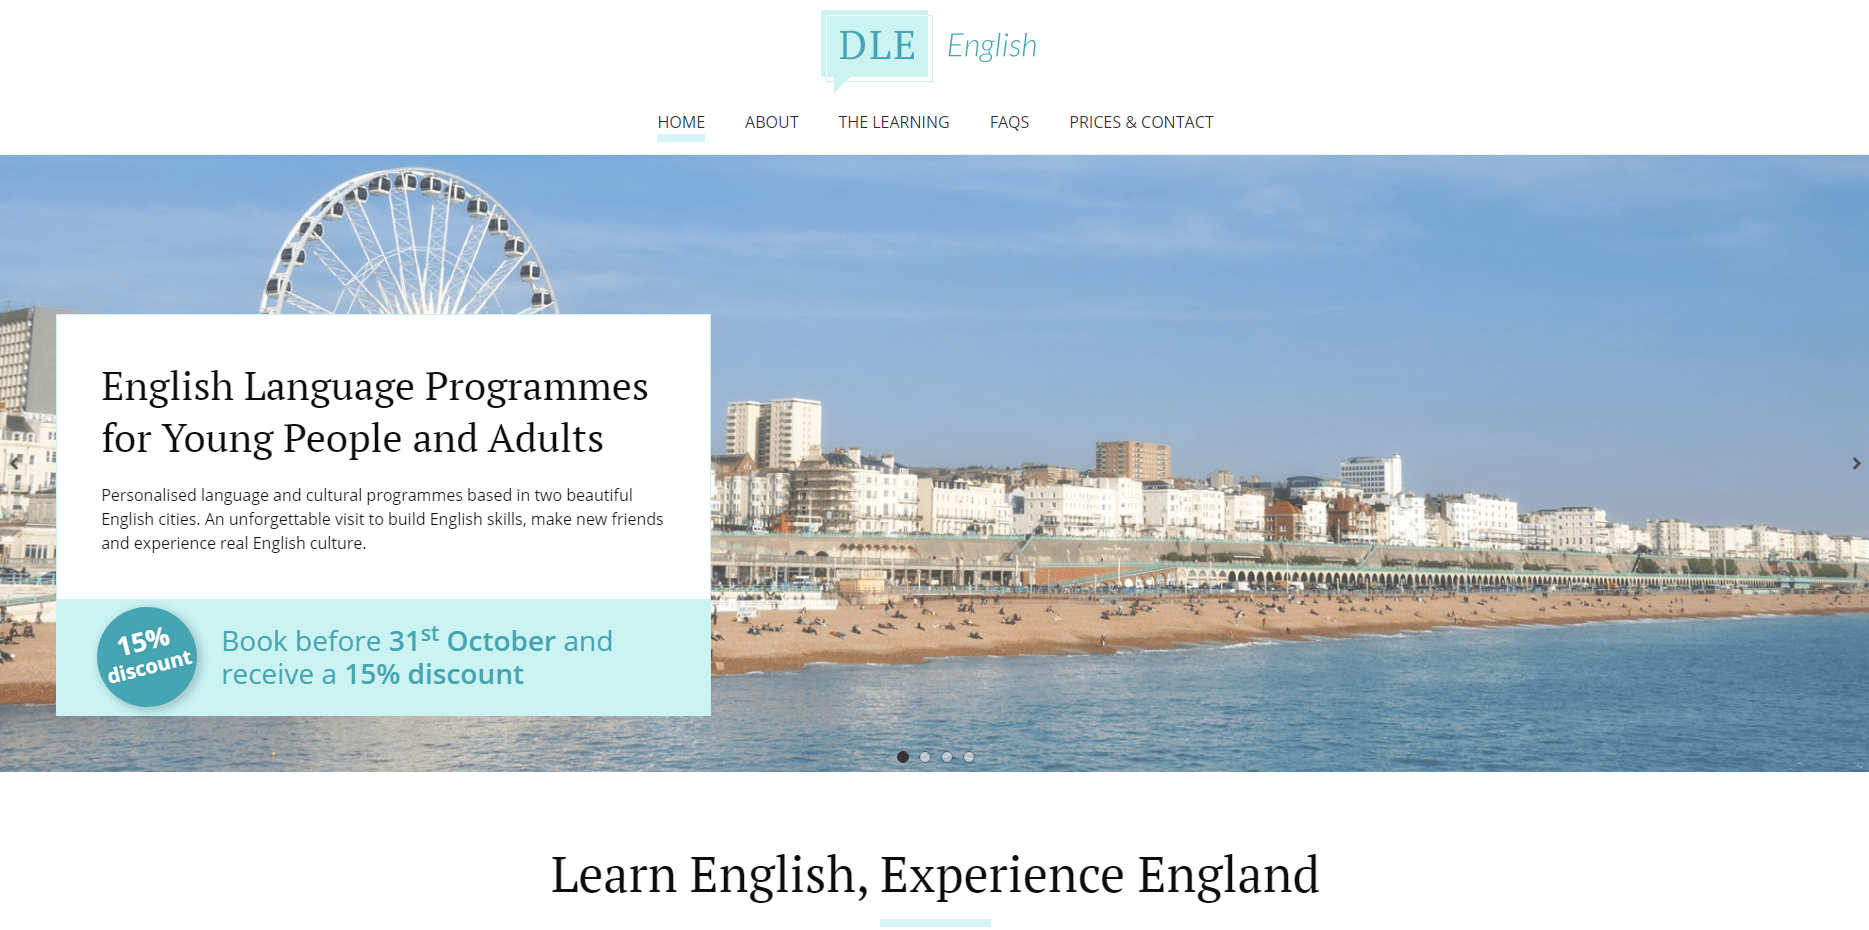 dle english language programmes